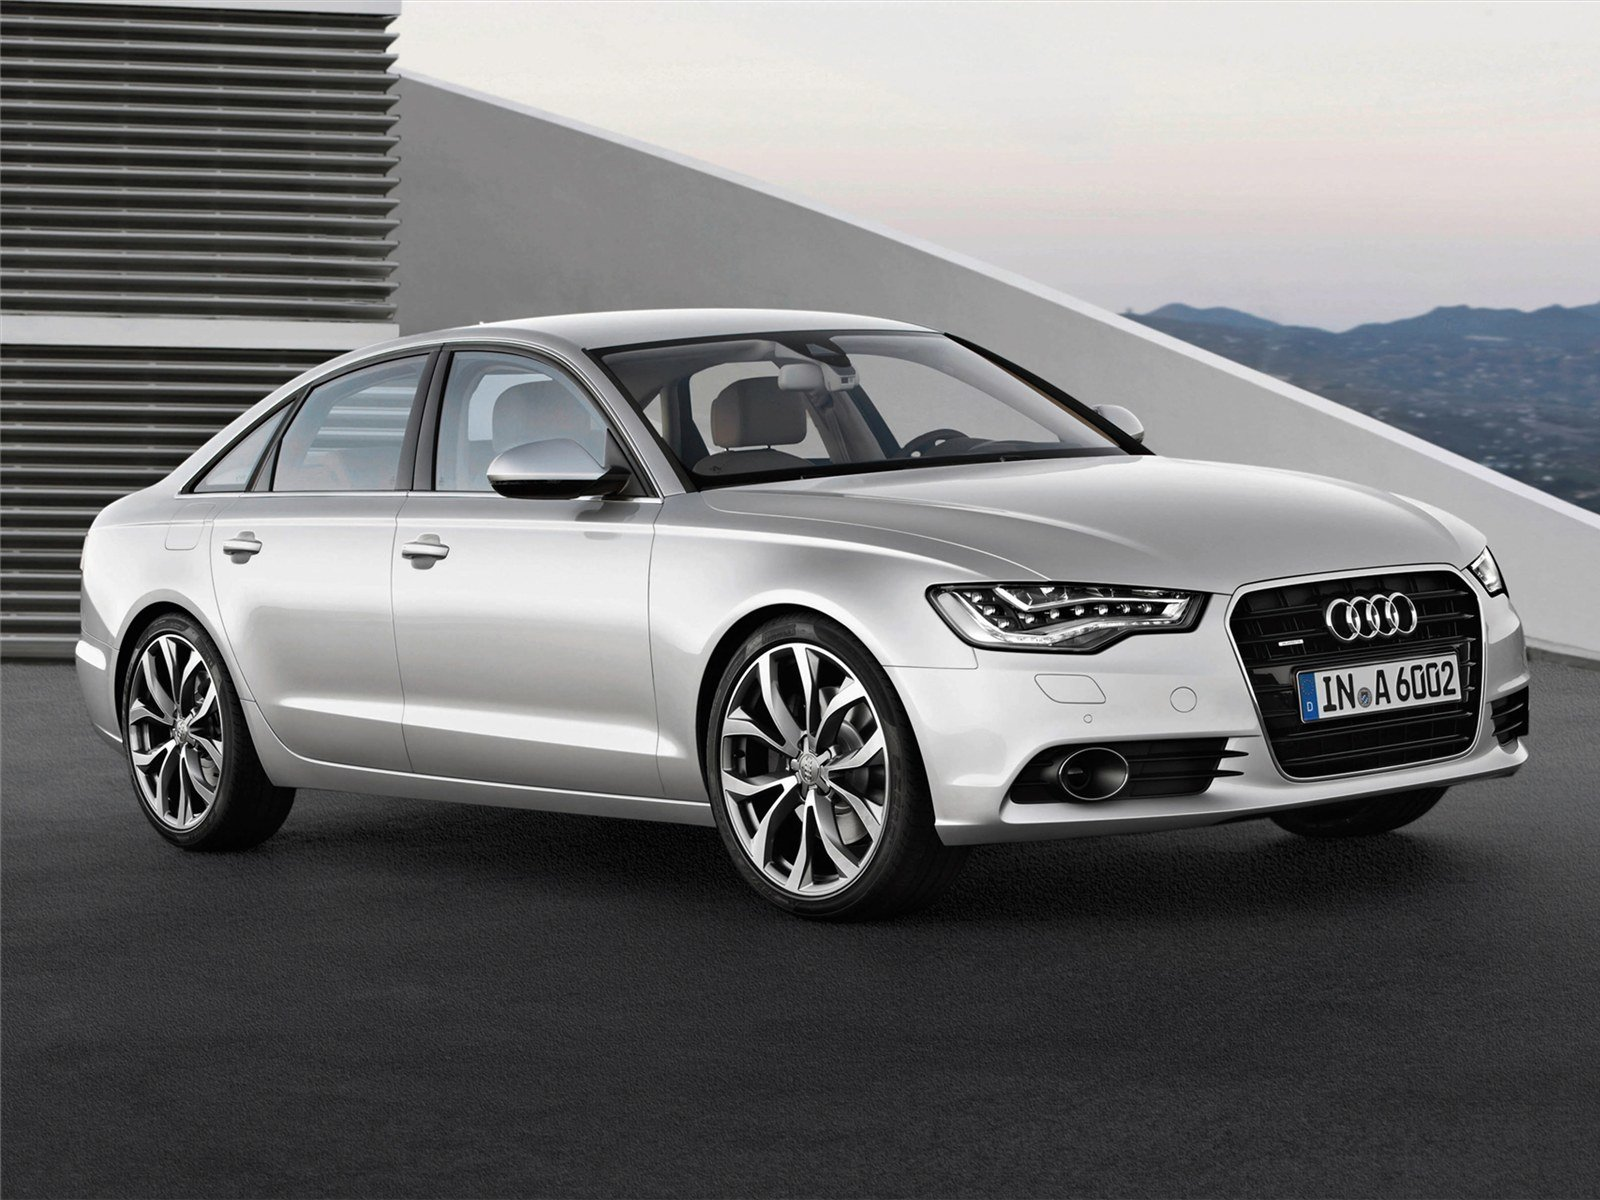 Latest Car Pictures Audi A6 2011 Free Download